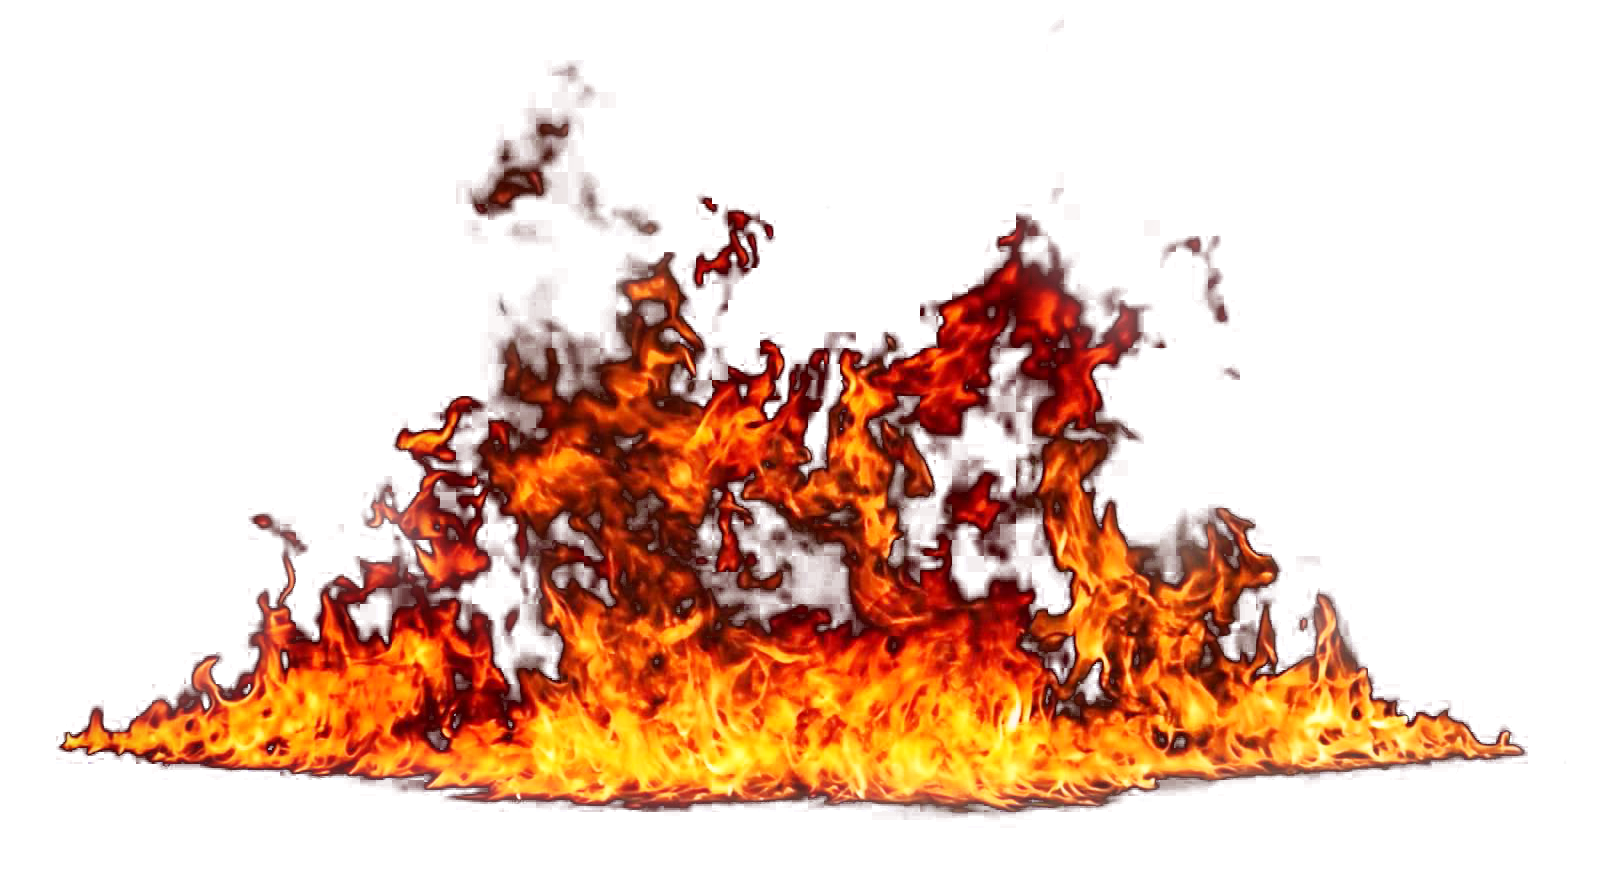 Fire Flame Png Image Png Photo Background Png